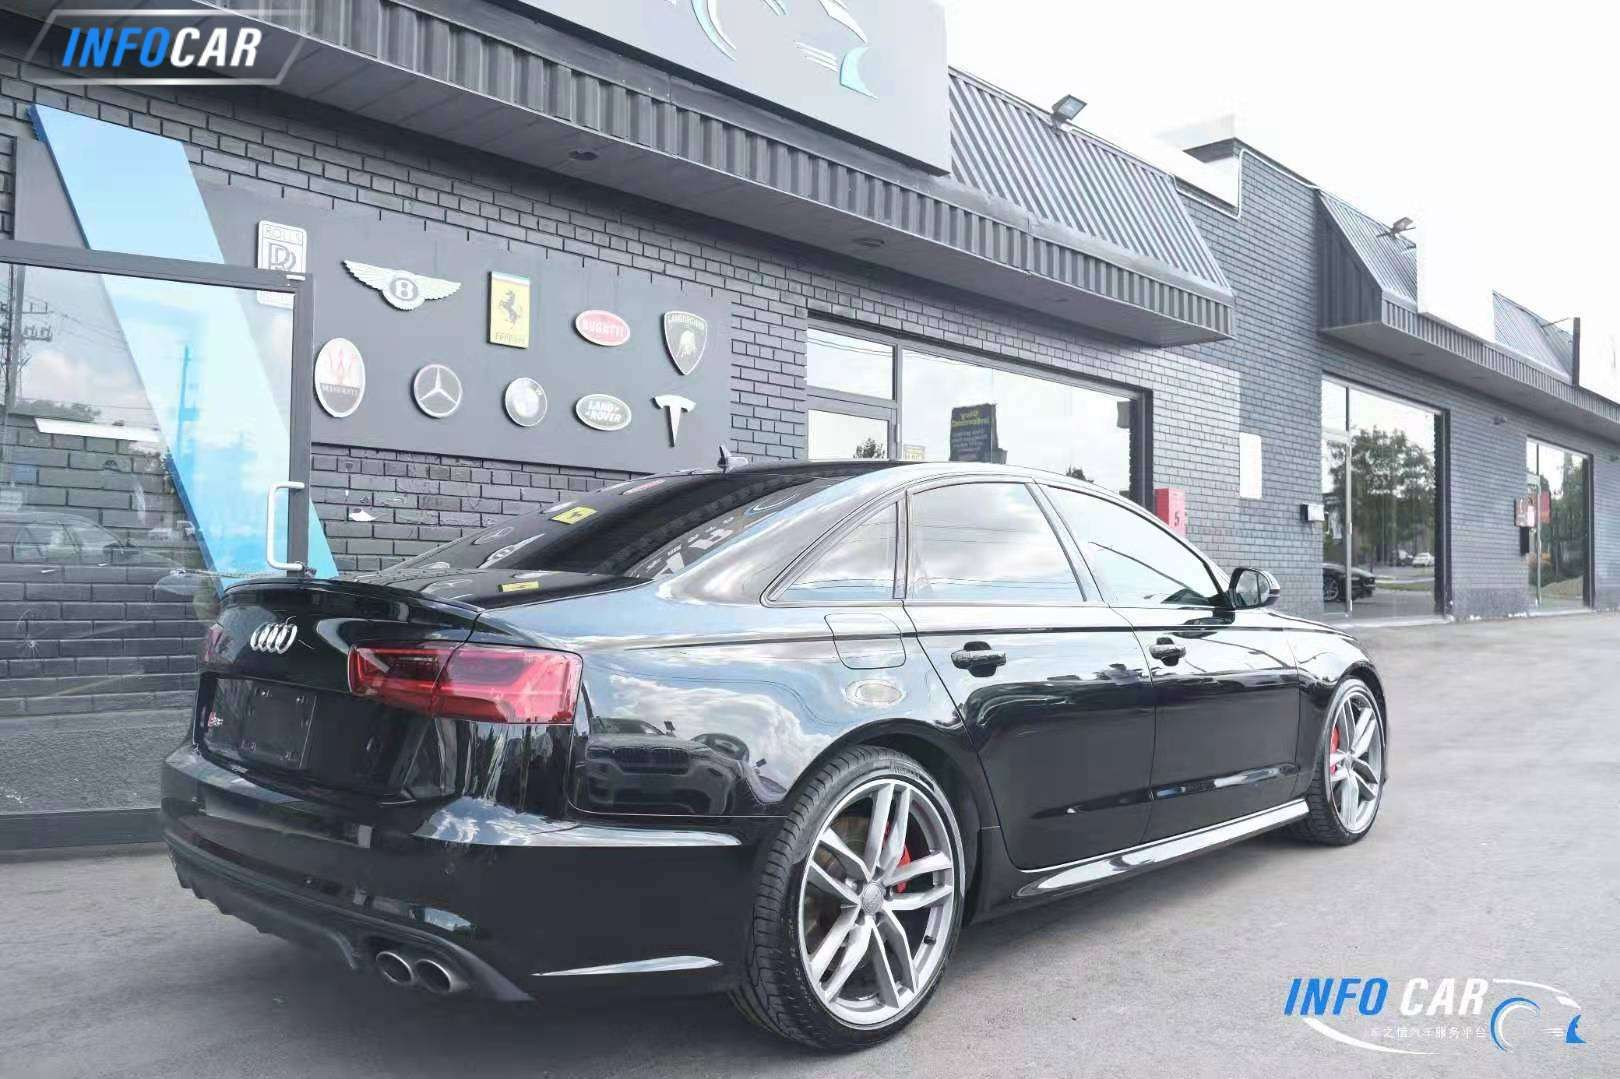 2017 Audi S6 tech - INFOCAR - Toronto's Most Comprehensive New and Used Auto Trading Platform